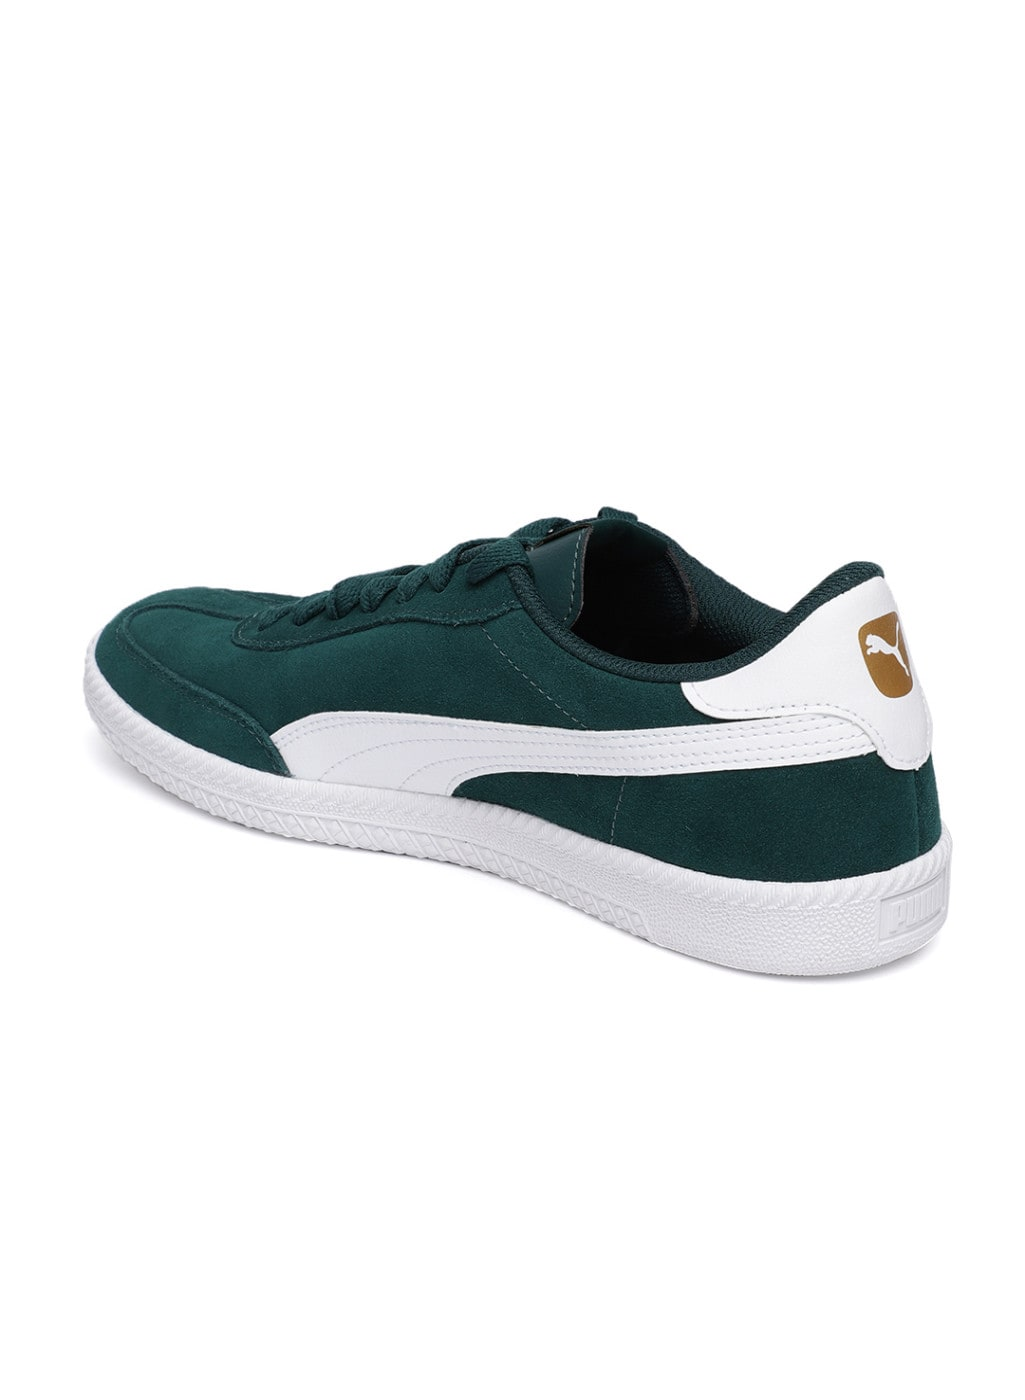 Puma Olive Green Carson 2 Molded Suede Sneakers 4774701.htm